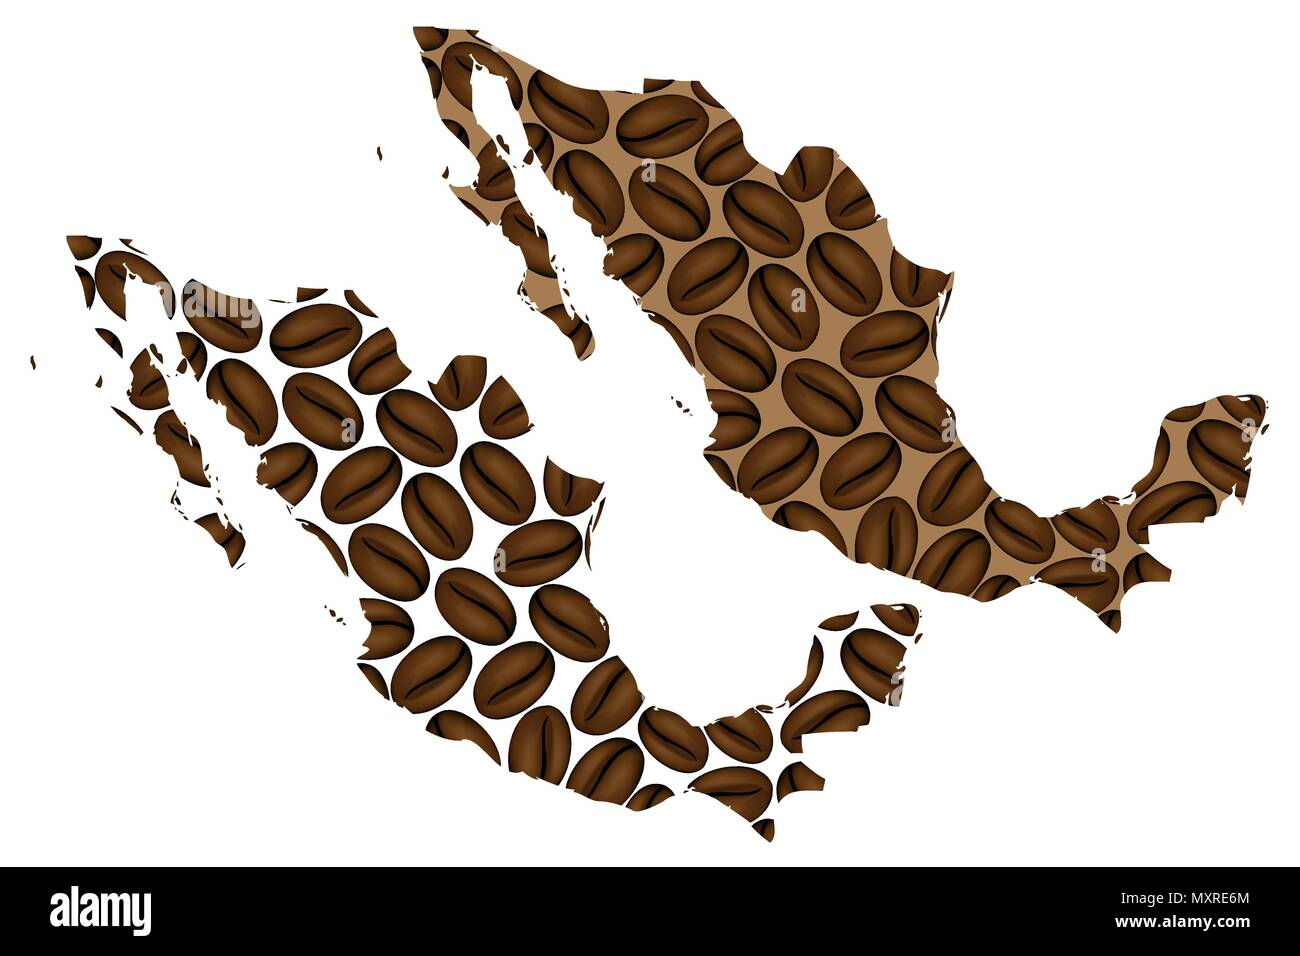 Mexico - map of coffee bean, United Mexican States map made of ...